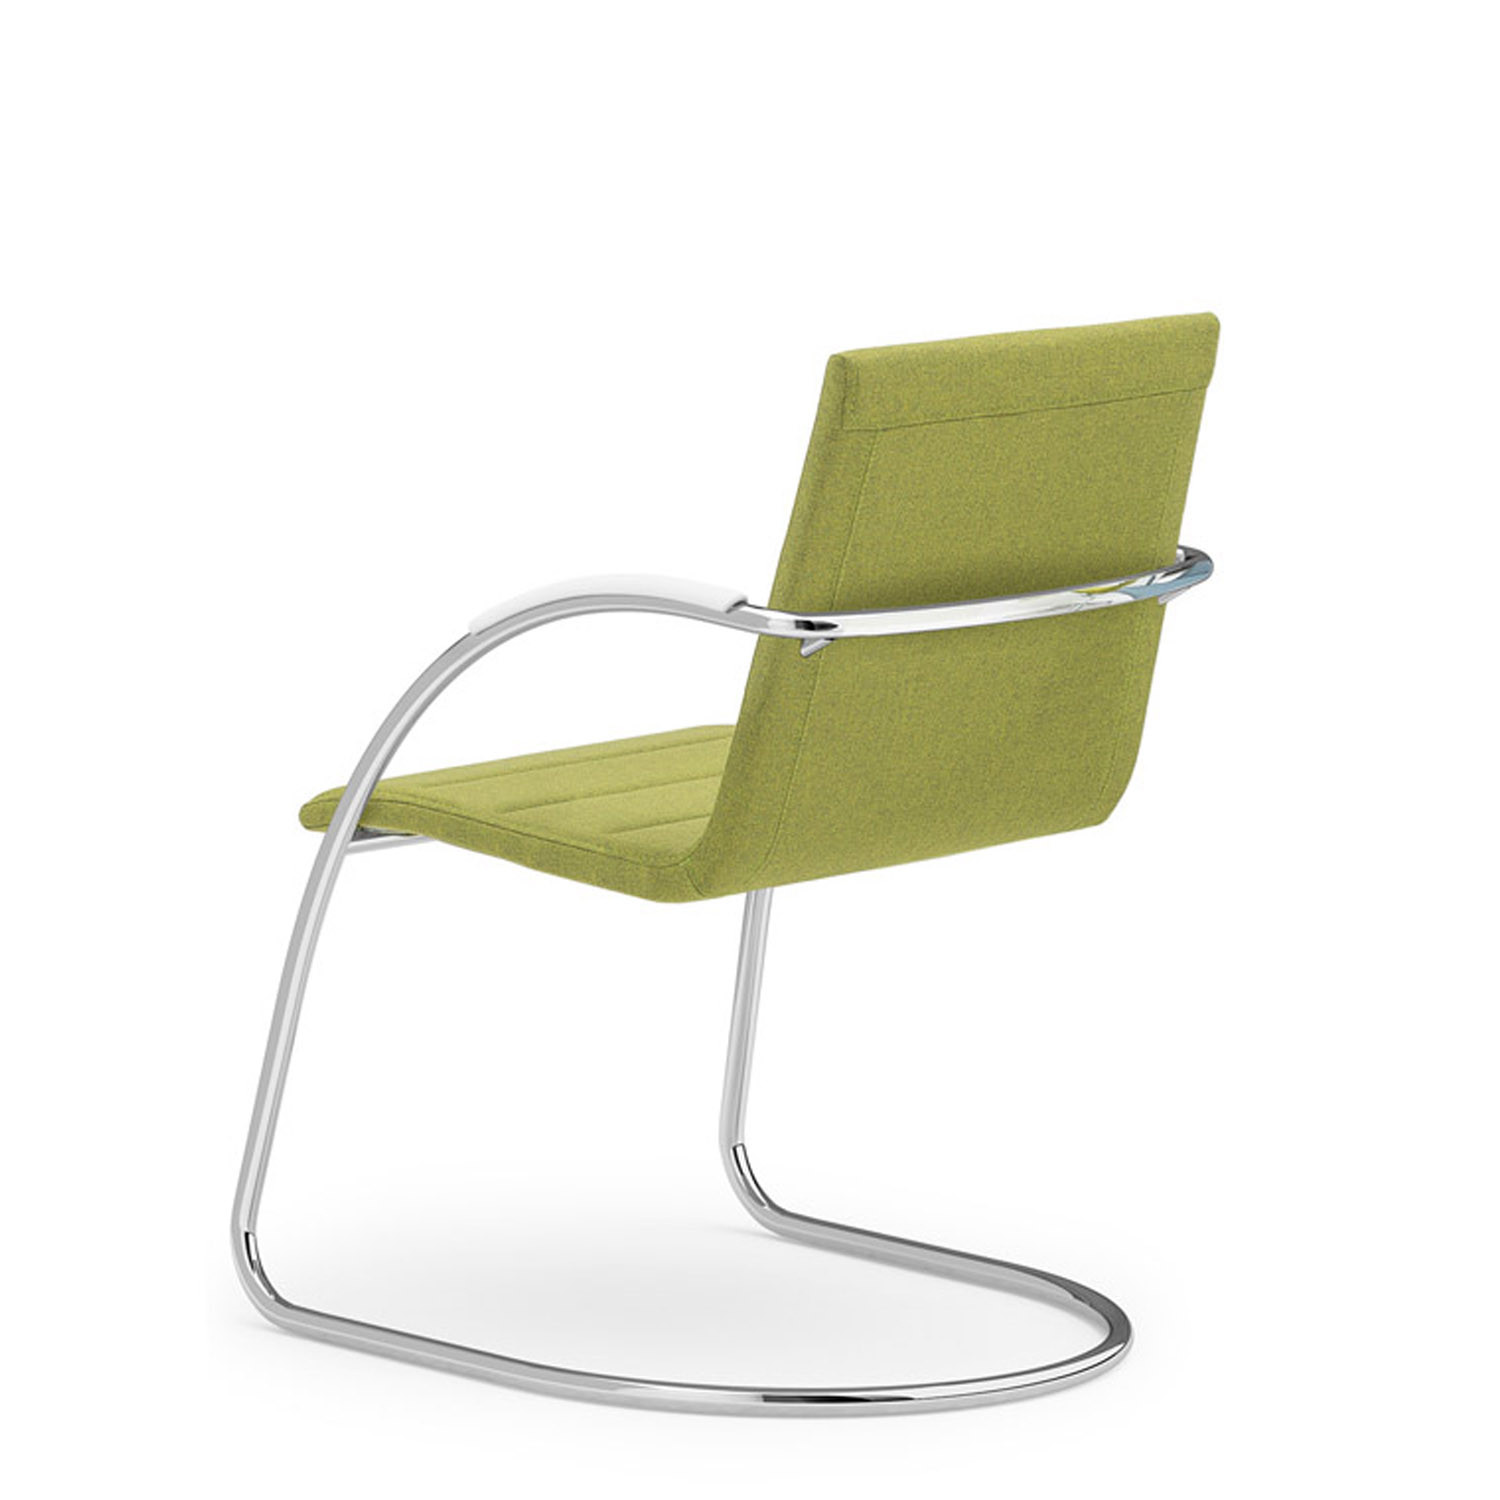 Valea Cantilever Chair from ICF Spa